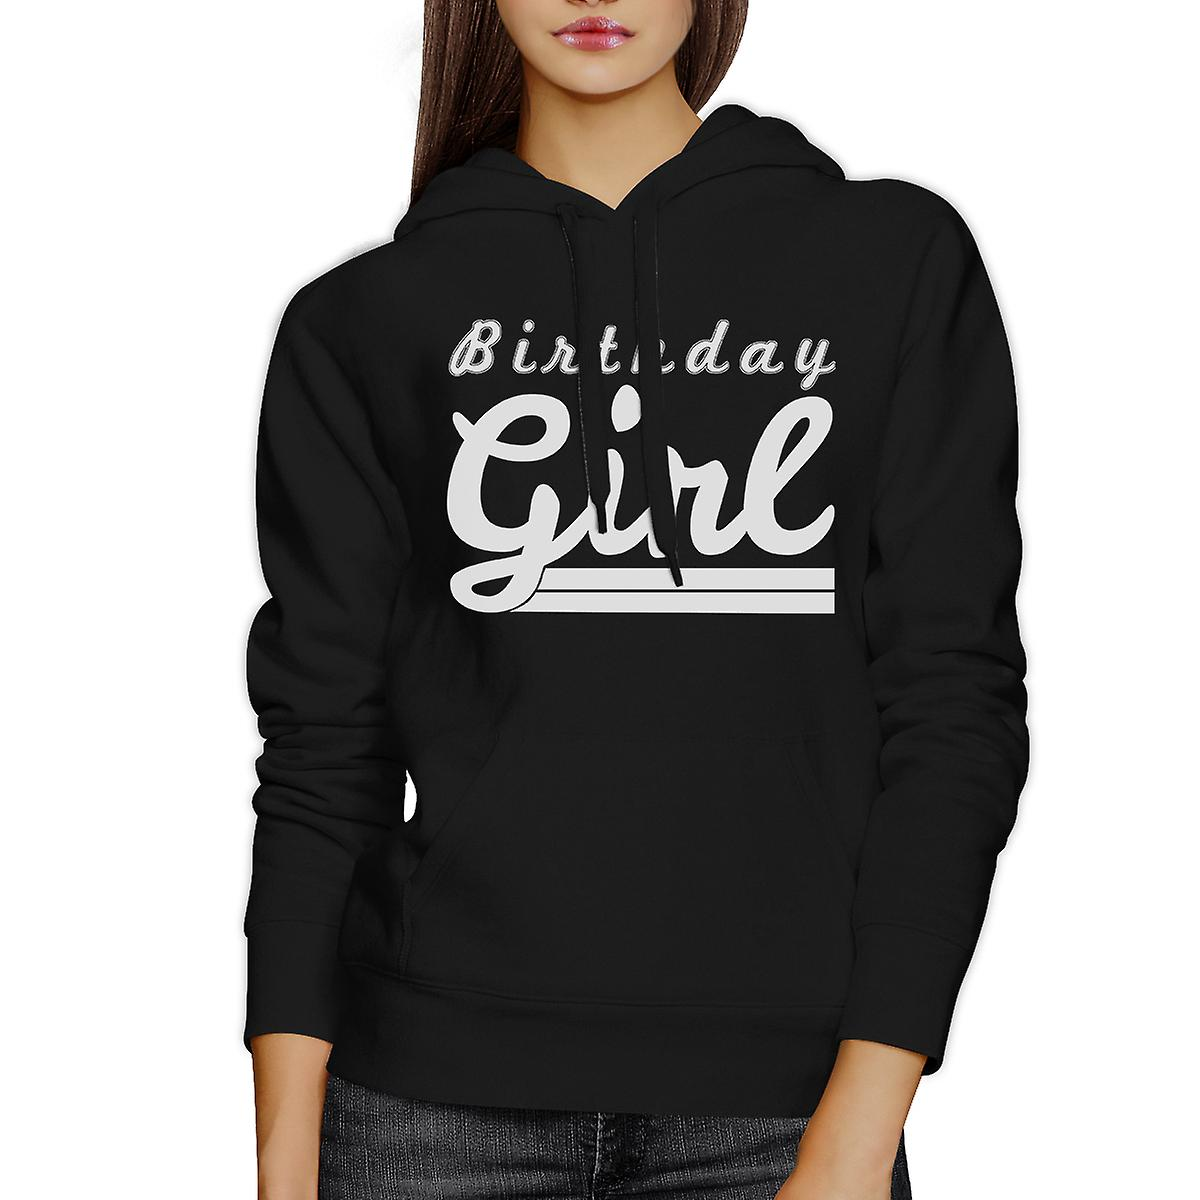 Birthday Girl Black Cute Graphic Hoodie Funny Gift For Her